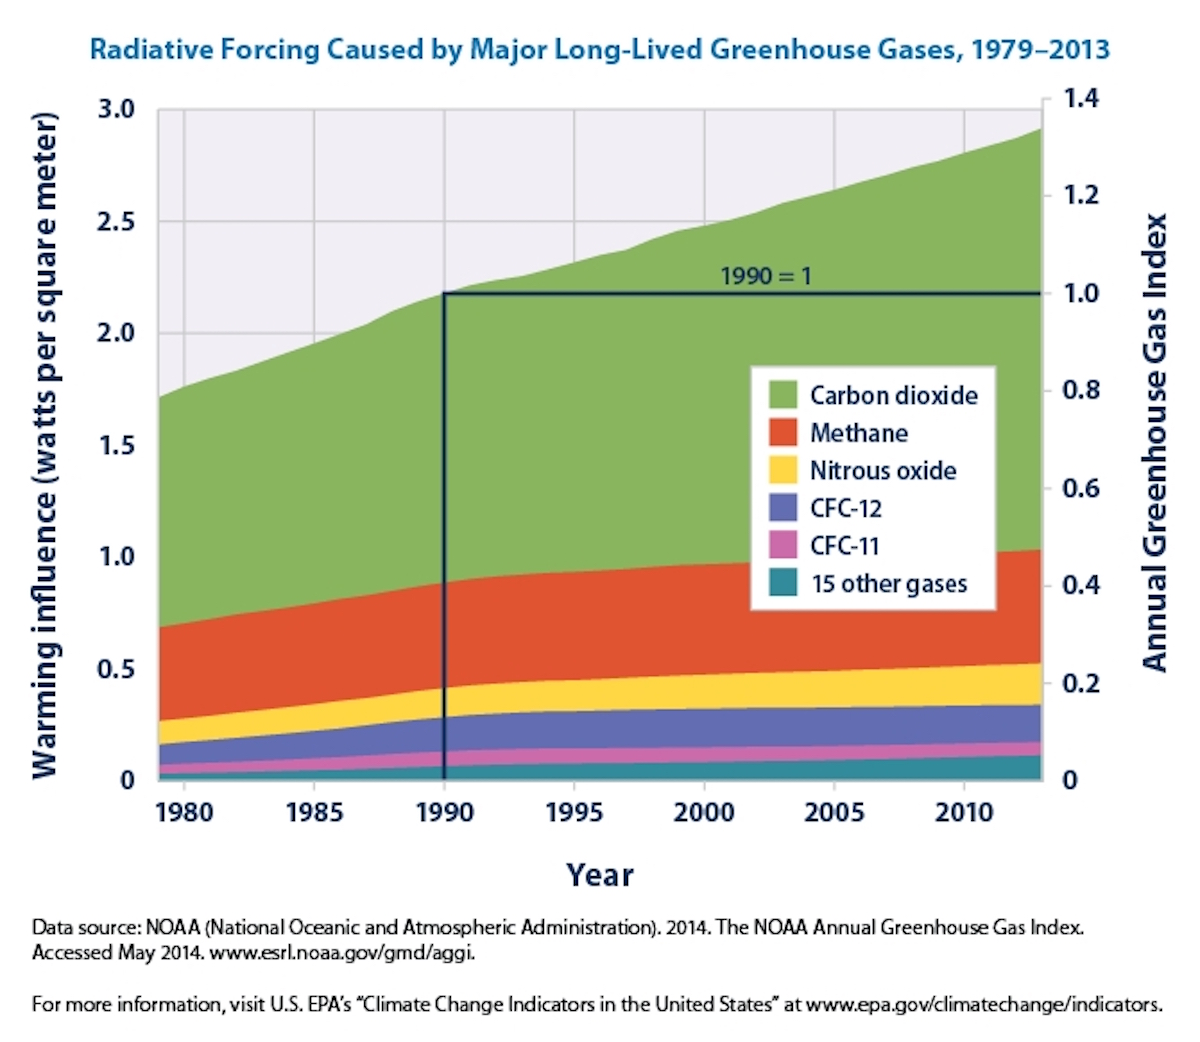 radiative-forcing-caused-by-greenhouse-gases-graph.jpeg